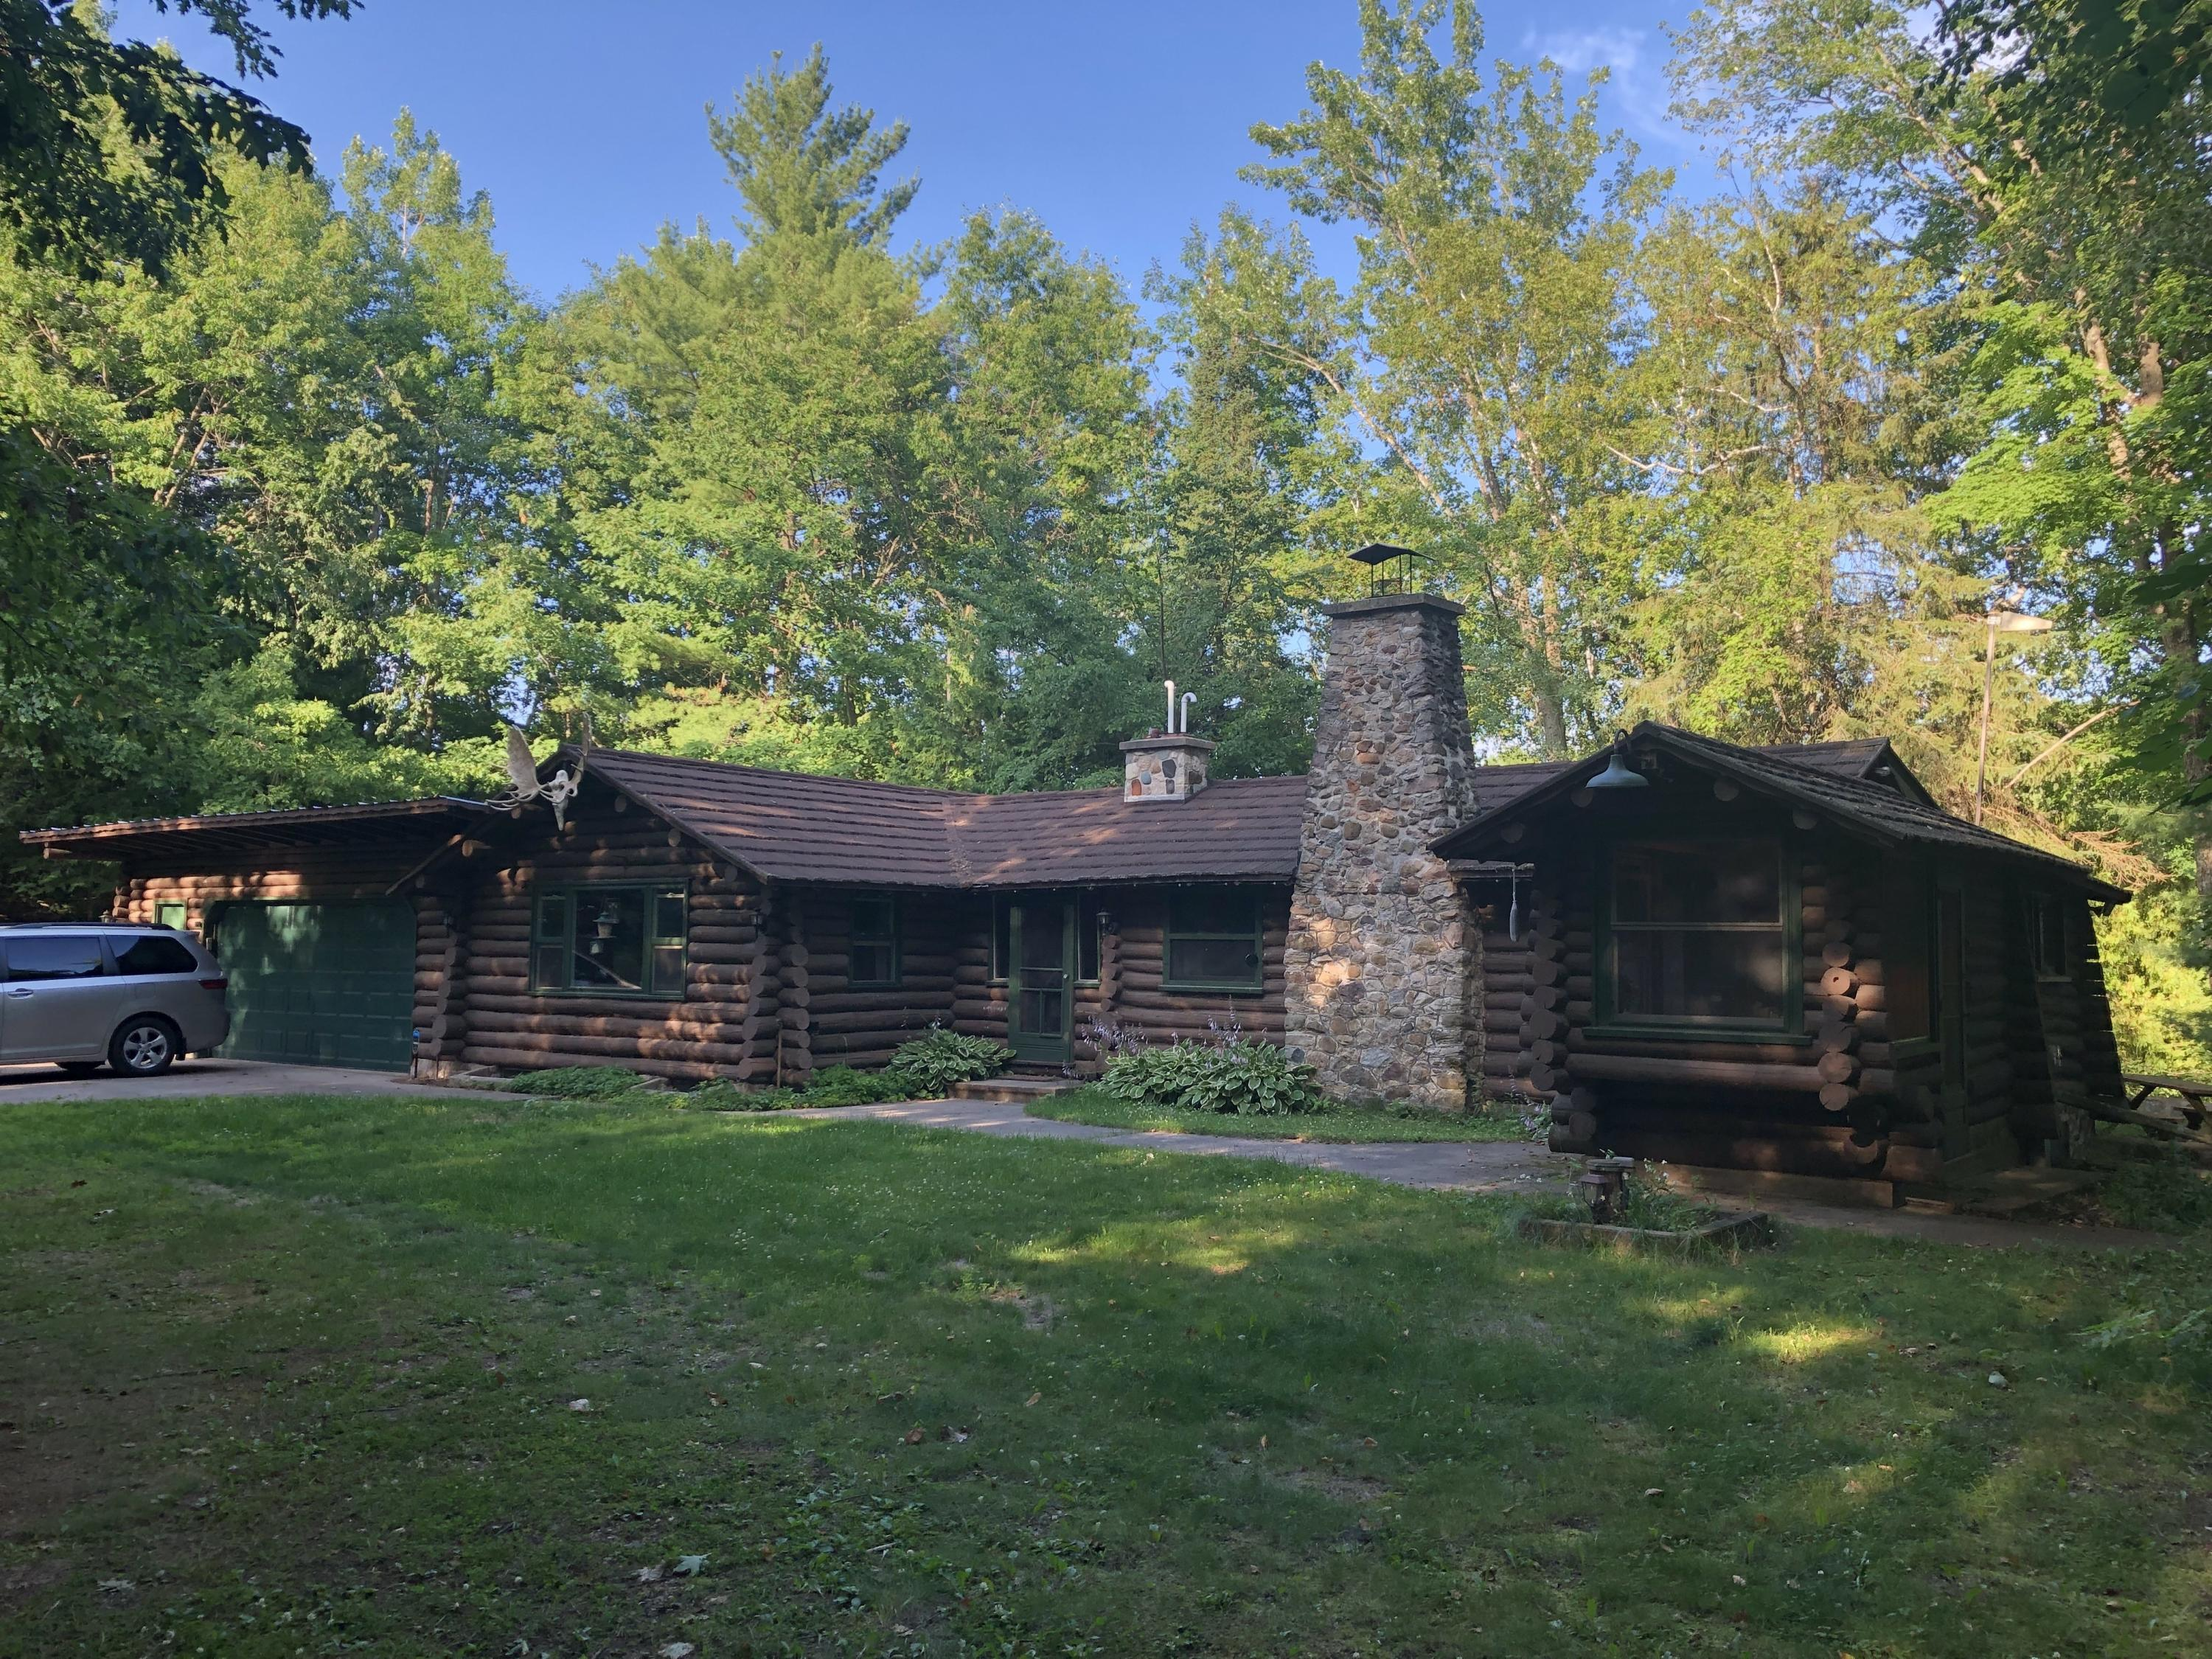 Cabin front R to L